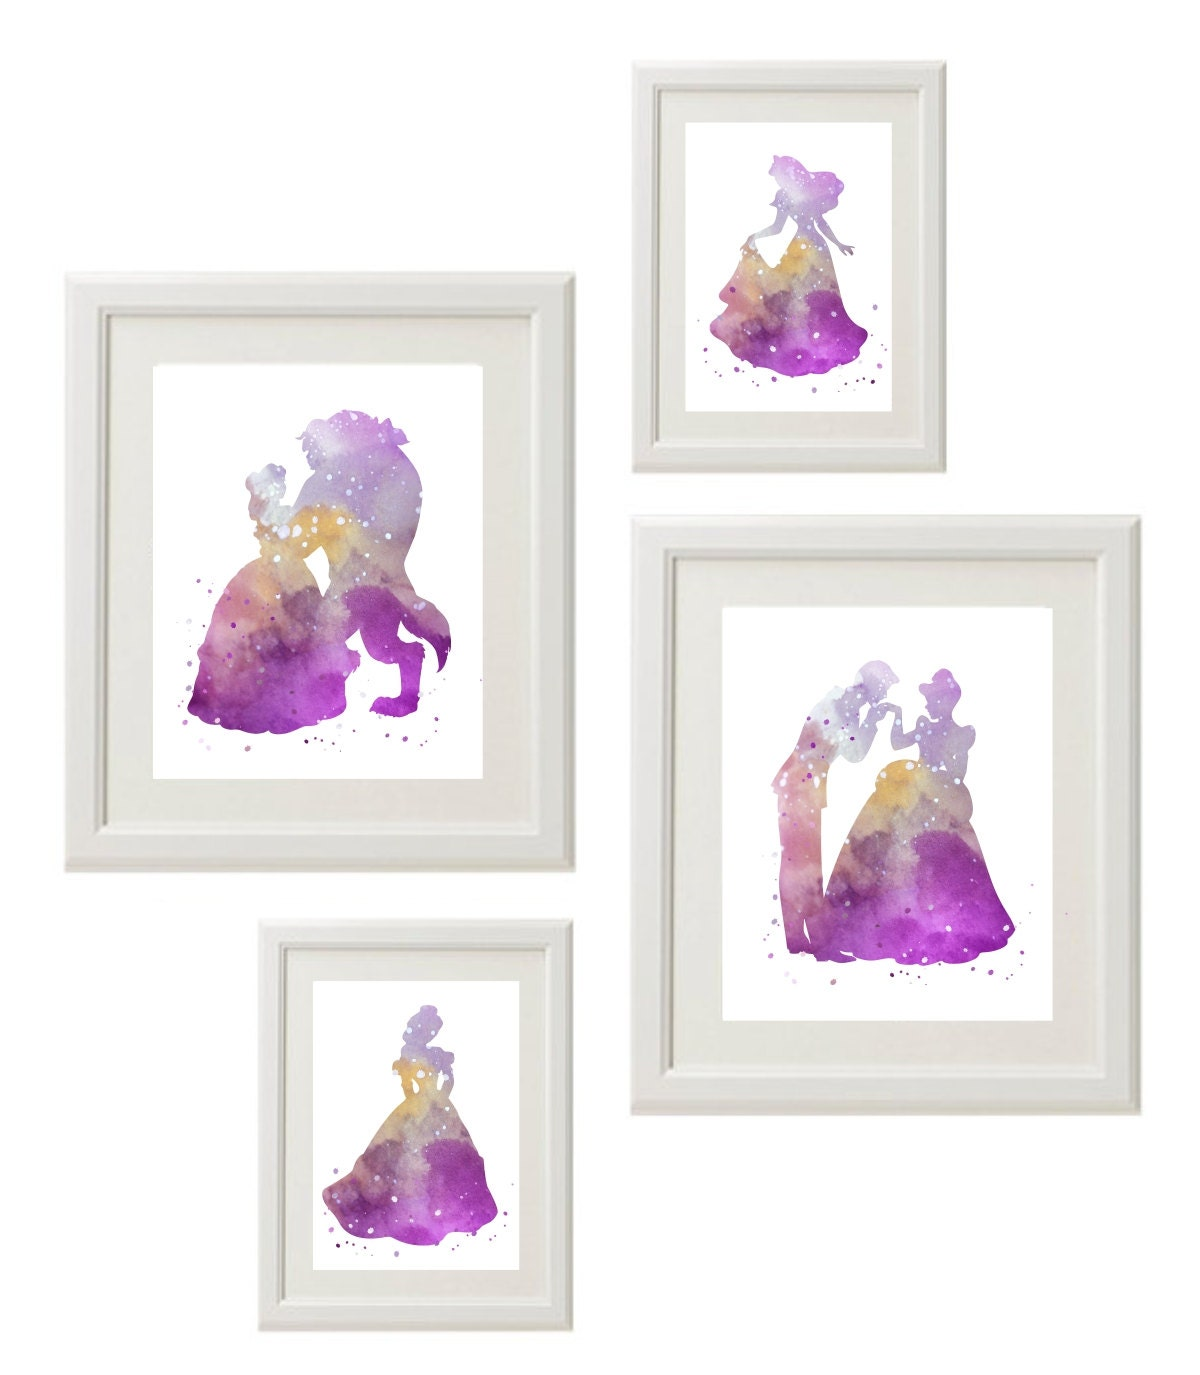 disney princess silhouette wall art girl room playroom decor. Black Bedroom Furniture Sets. Home Design Ideas